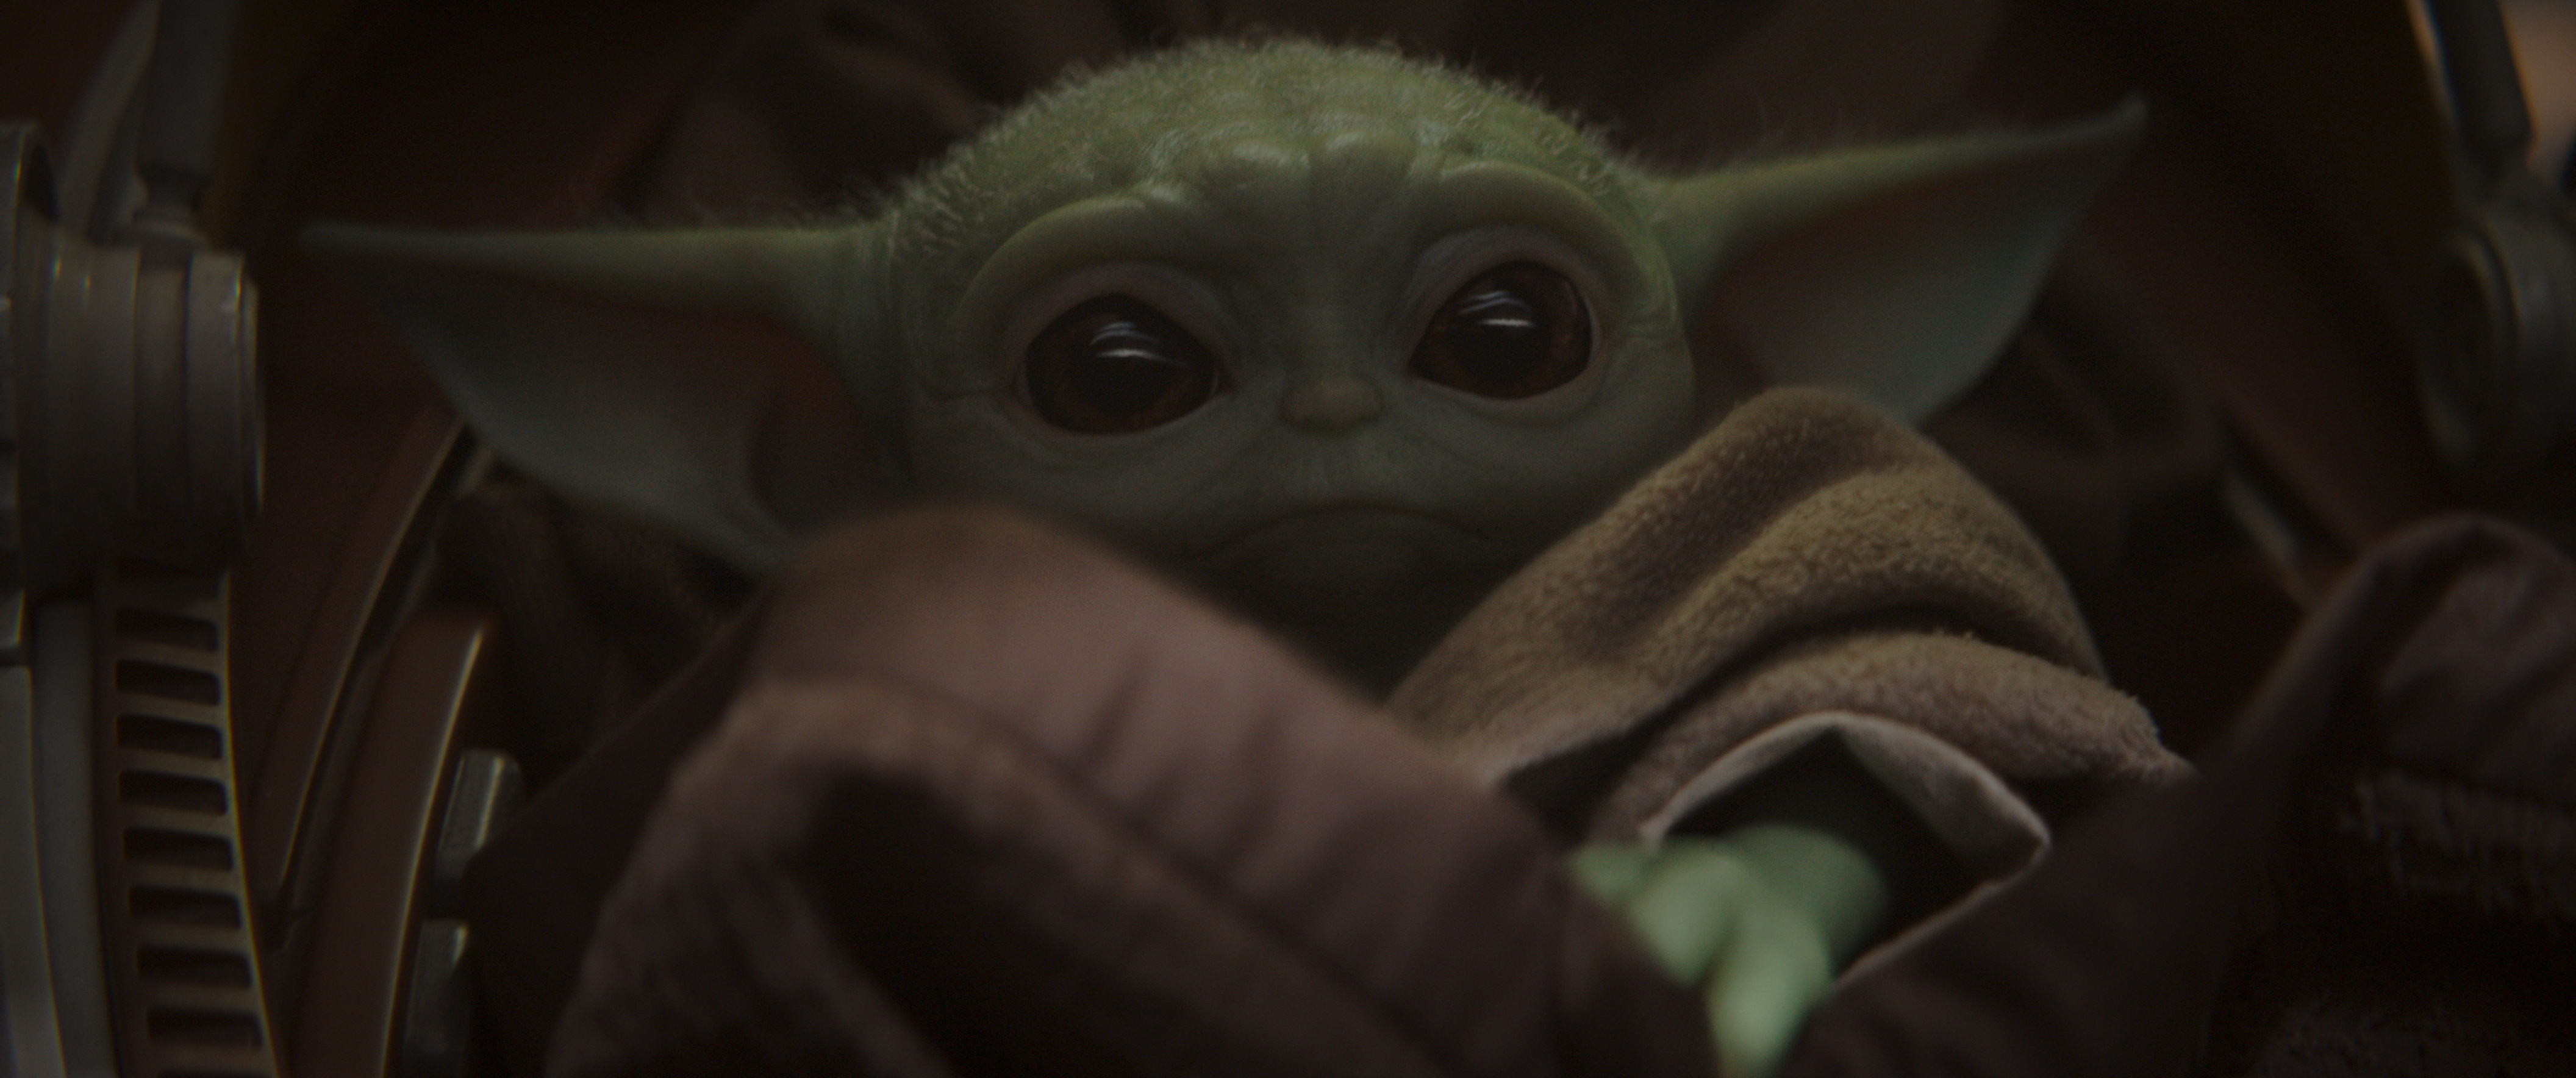 "This undated image provided by Disney Plus shows a scene from ""The Mandalorian."" People can send each other animations of Baby Yoda again. Giphy, a database of the mini-videos, had been removing animated GIF files of the Star Wars character from the new Disney Plus streaming series ""The Mandalorian."" (Disney Plus via AP)"